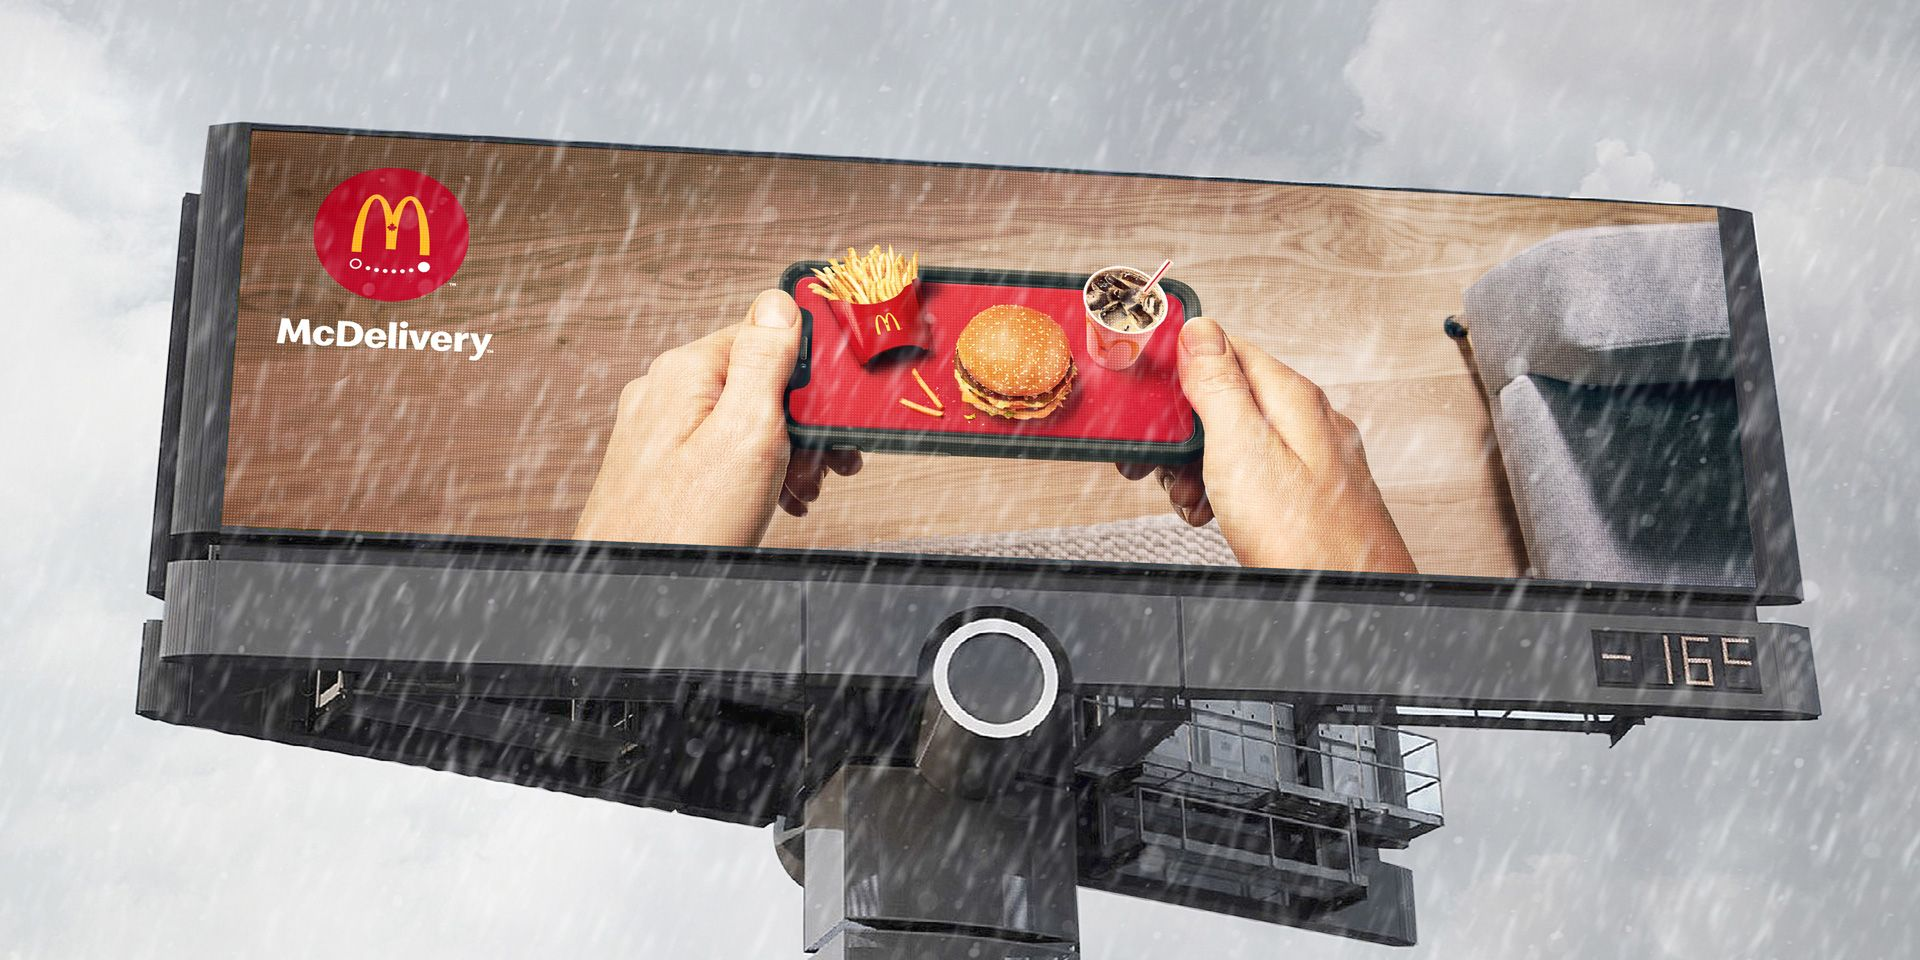 McDonald's delivery campaign image on a billboard in the winter.